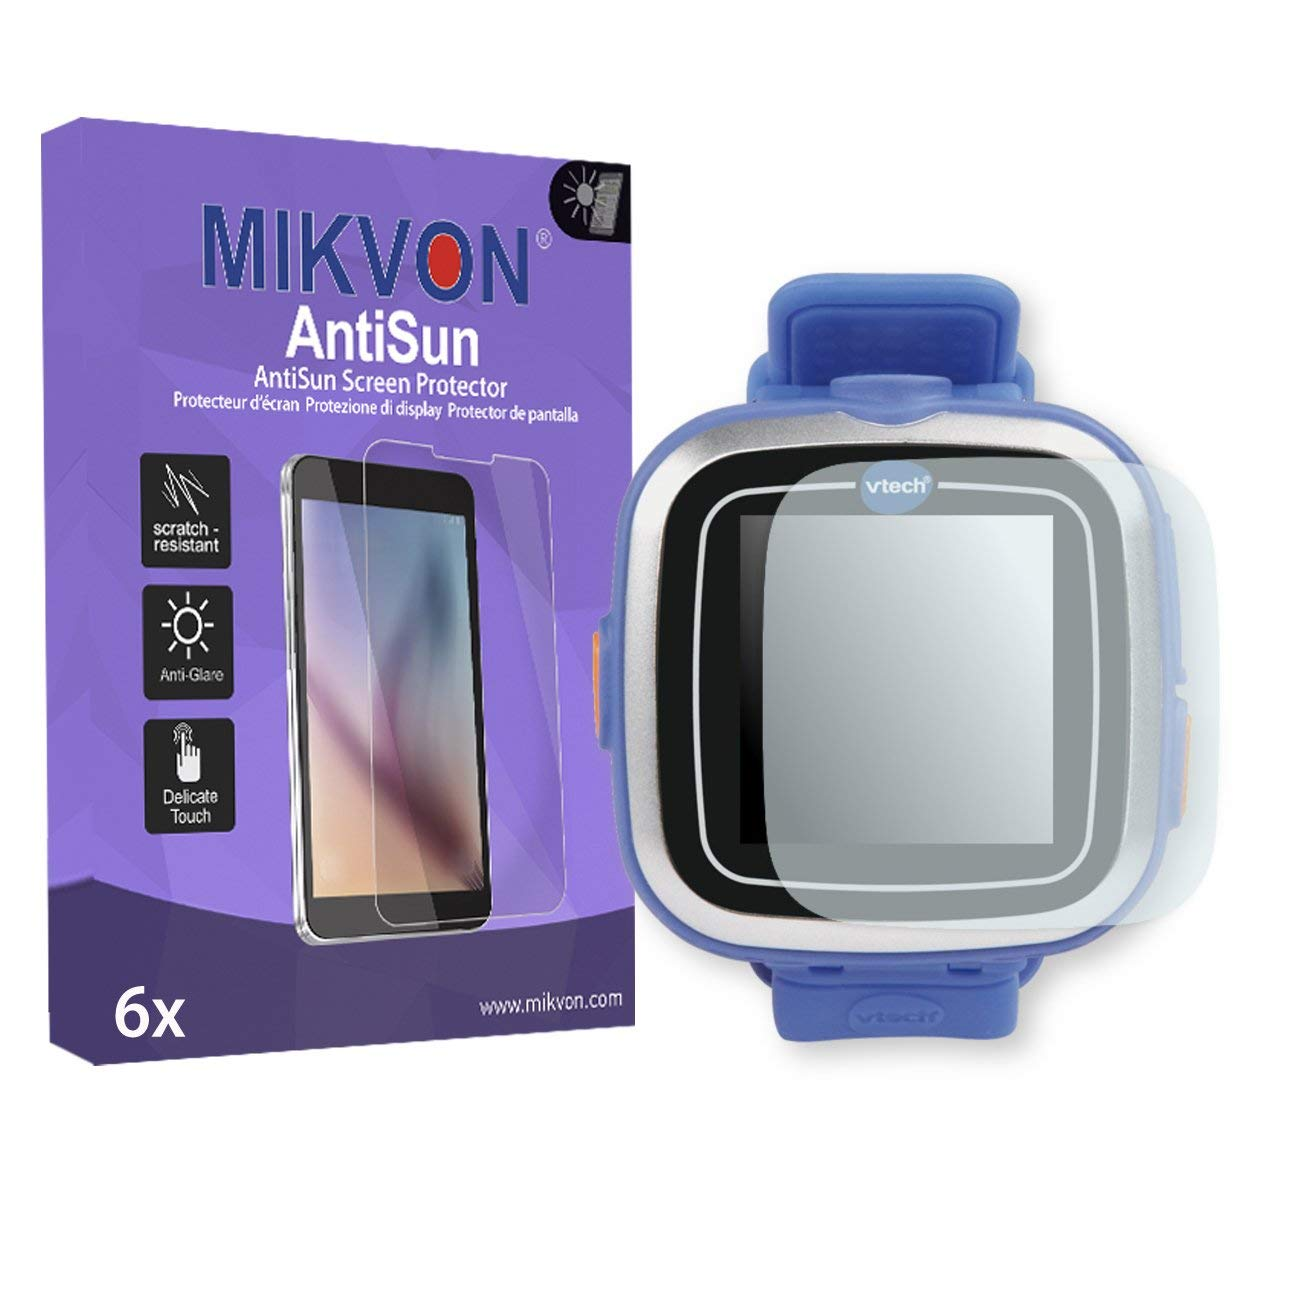 6x Mikvon AntiSun Screen Protector for Vtech Kidizoom Smart Watch 1 - Retail Package with accessories